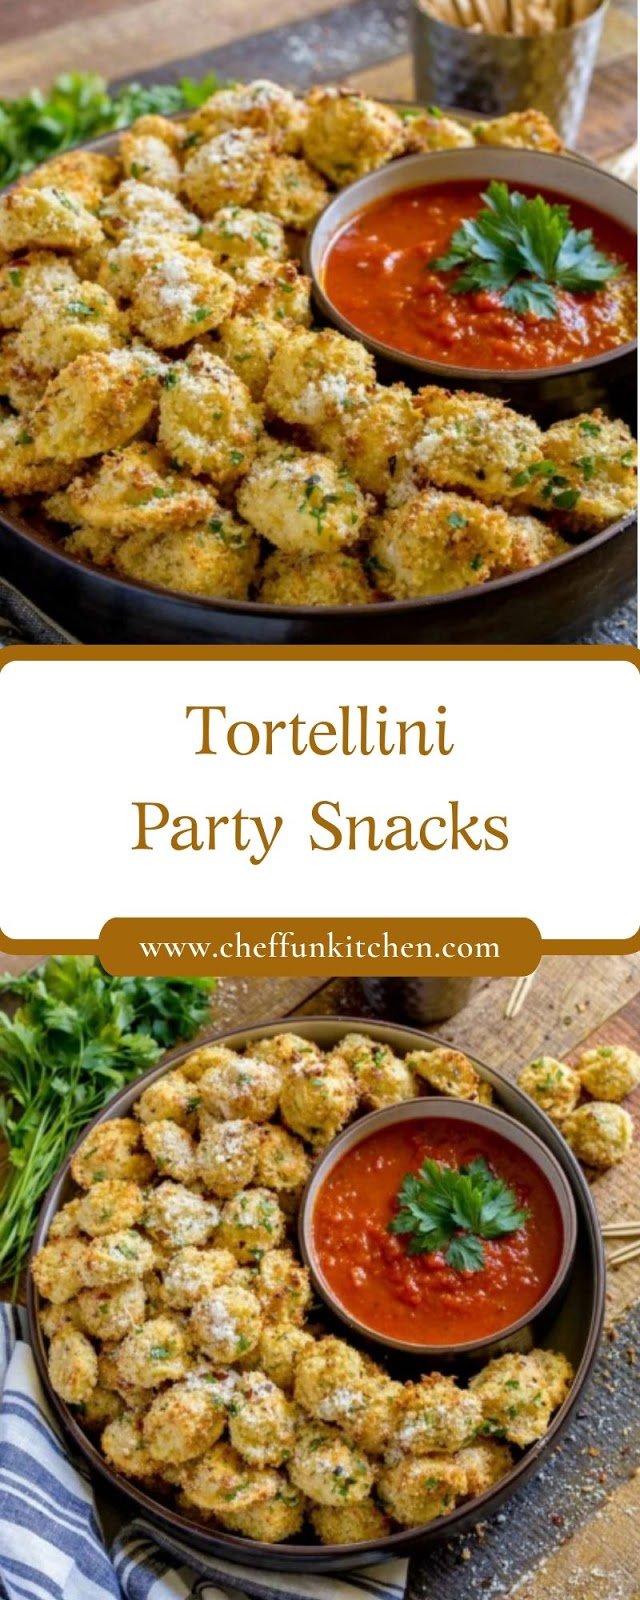 Tortellini Party Snacks